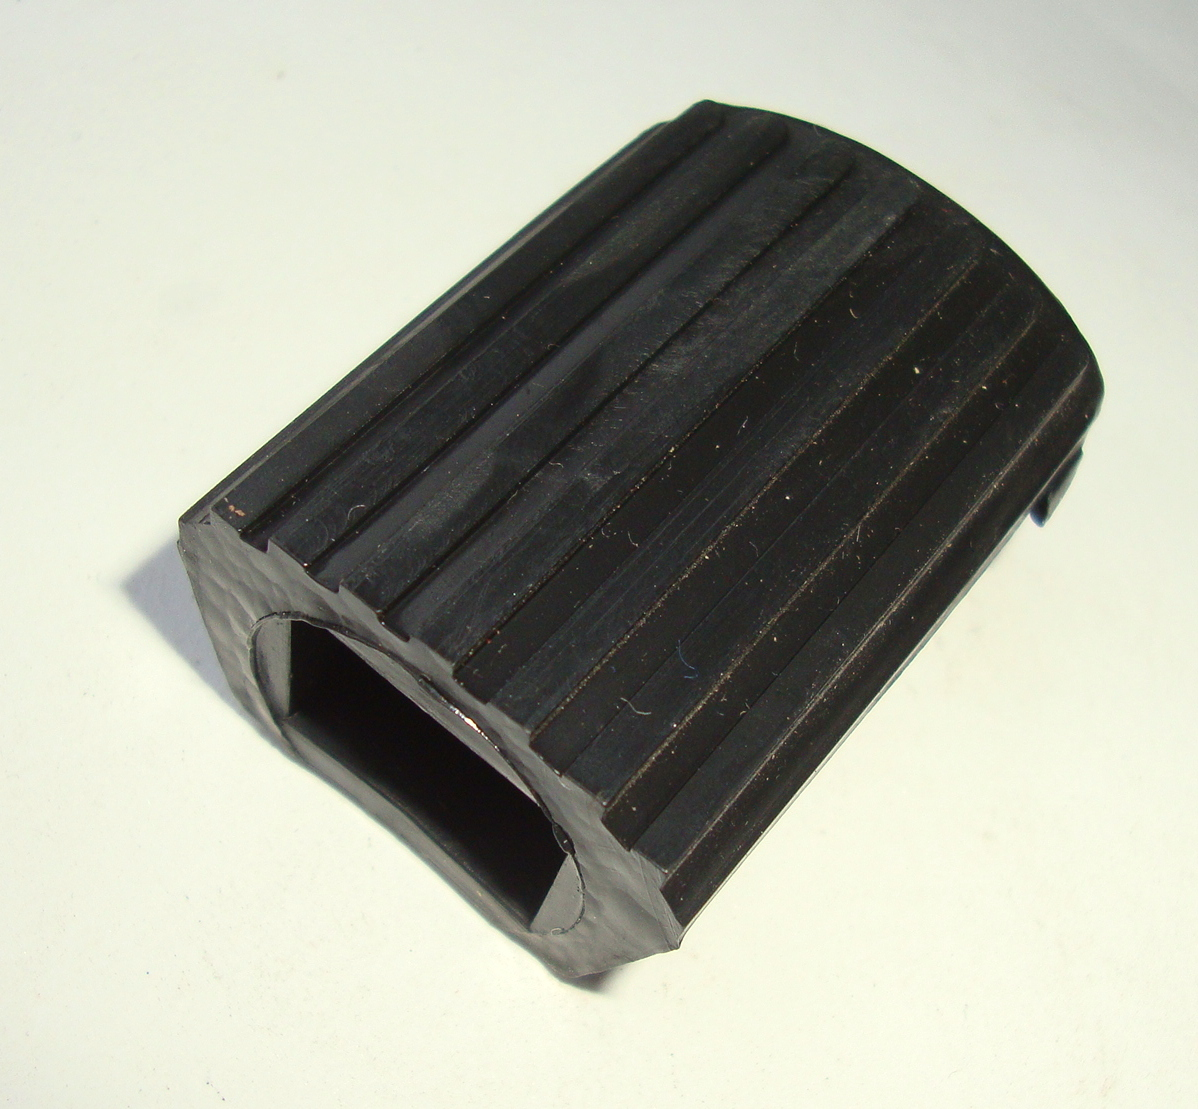 Rubber for brake pedal, Vespa 125 / 150 / 160 / 180 / 200